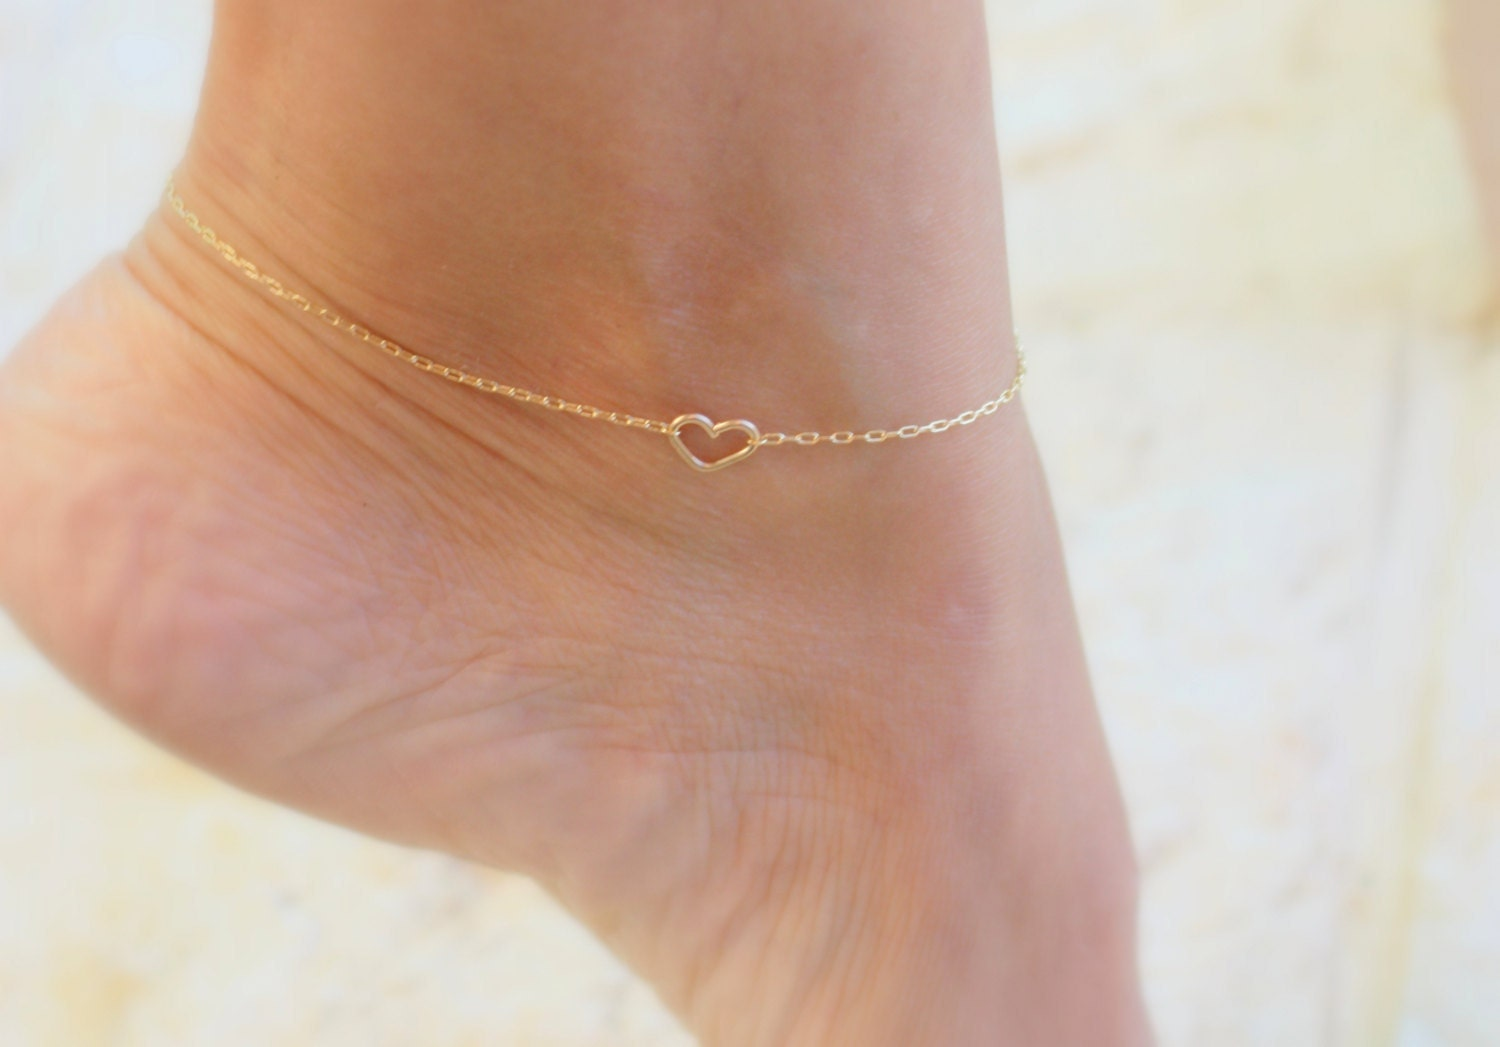 yellow price t gold over diamond sterling en in anklet avenue gem chain inch vermeil cut inches ankle snake qatar product silver bracelet